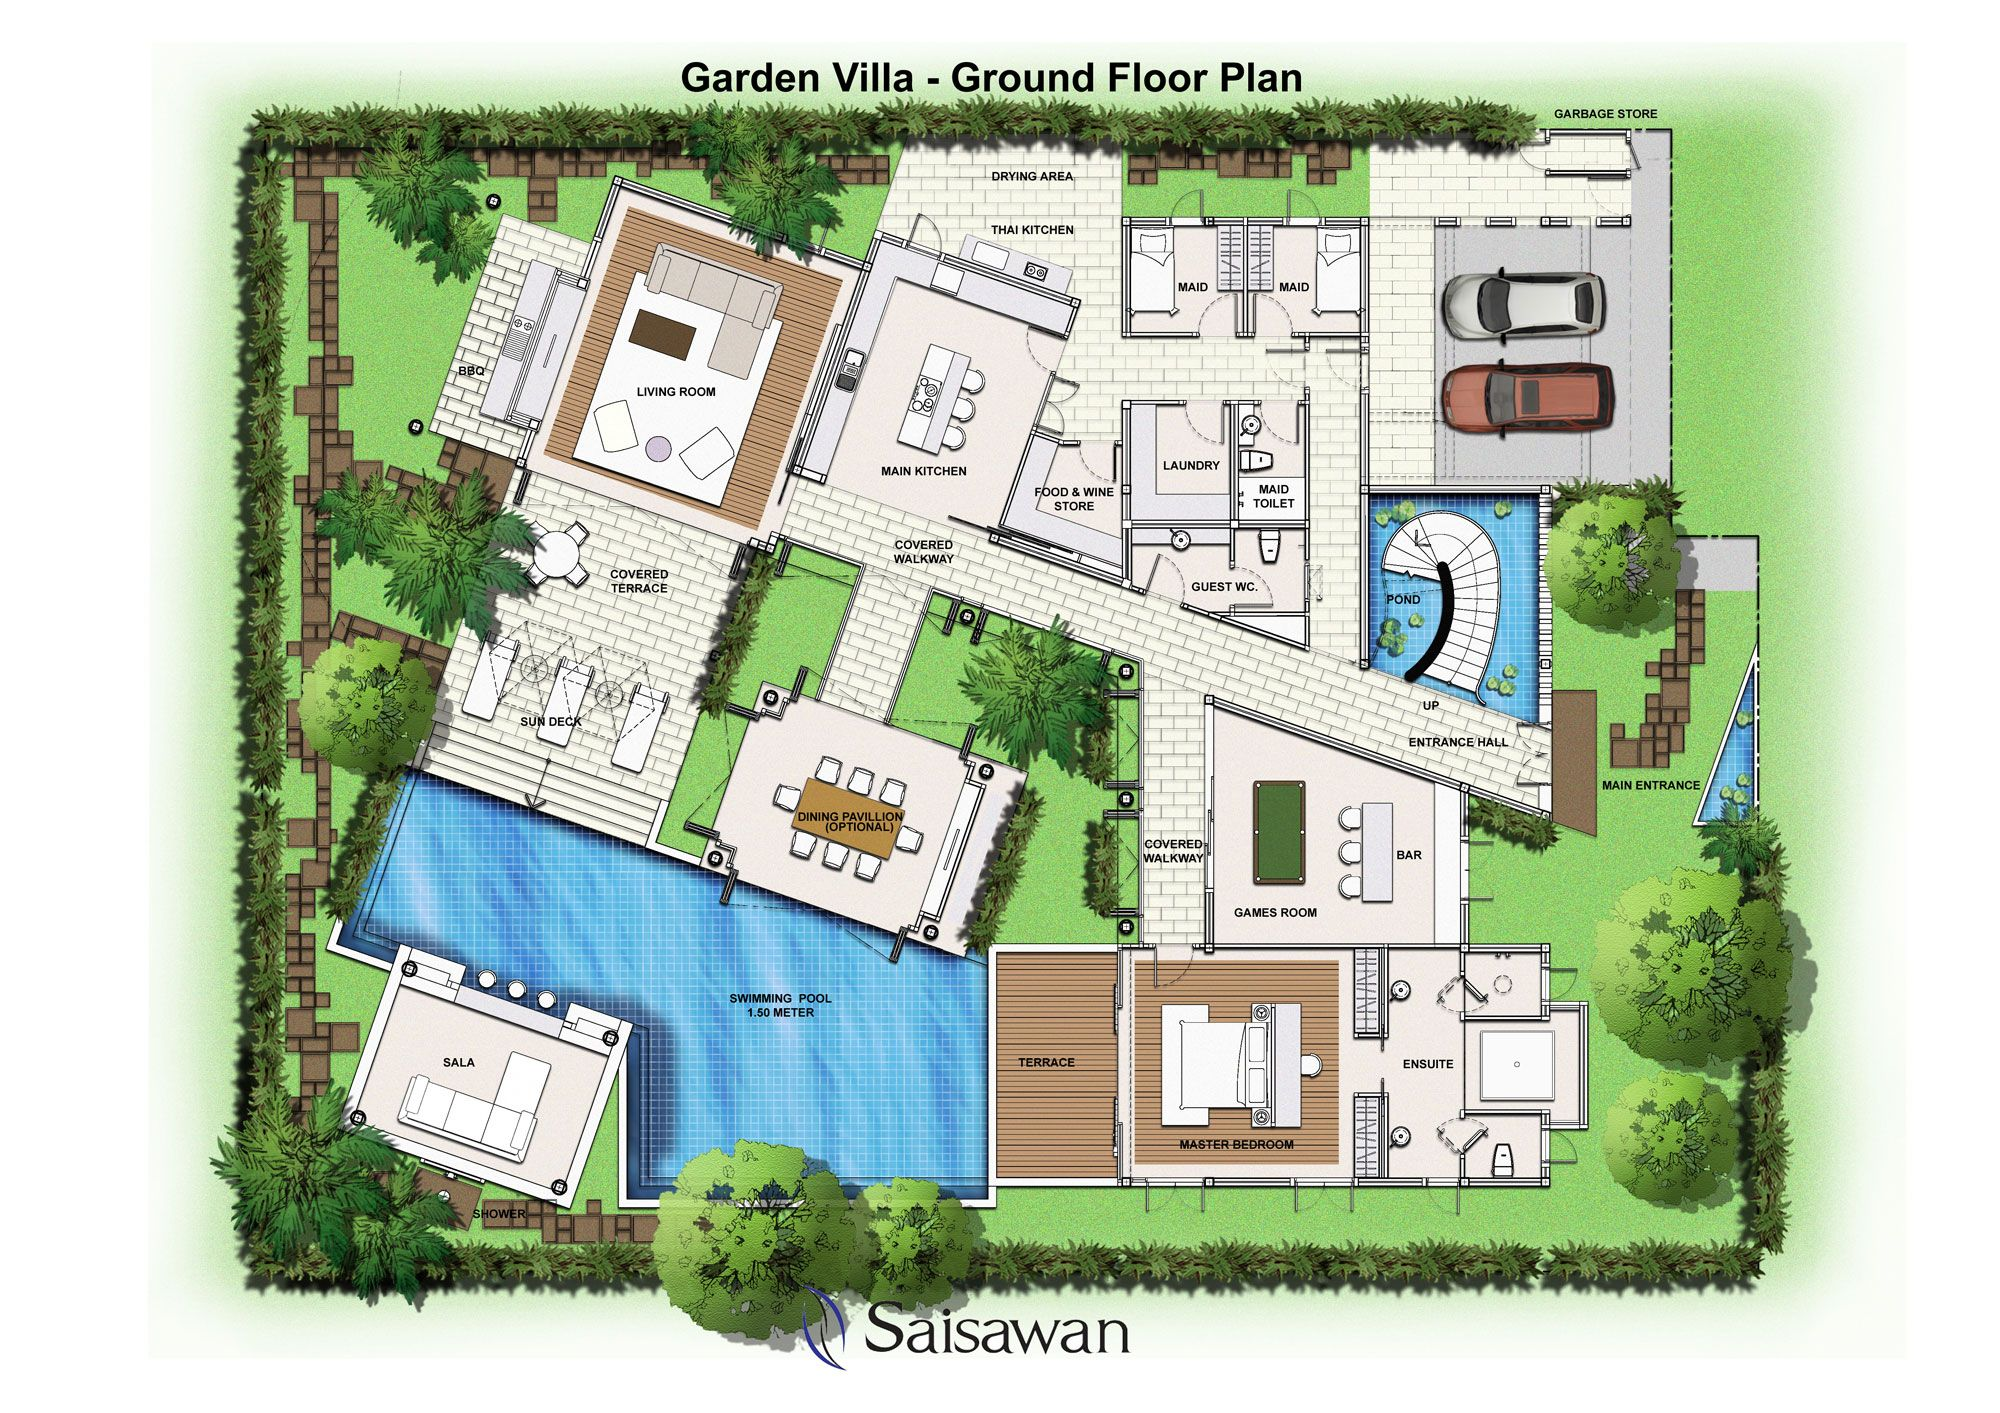 Home Garden Layout Of Saisawan Garden Villas Ground Floor Plan House Plans